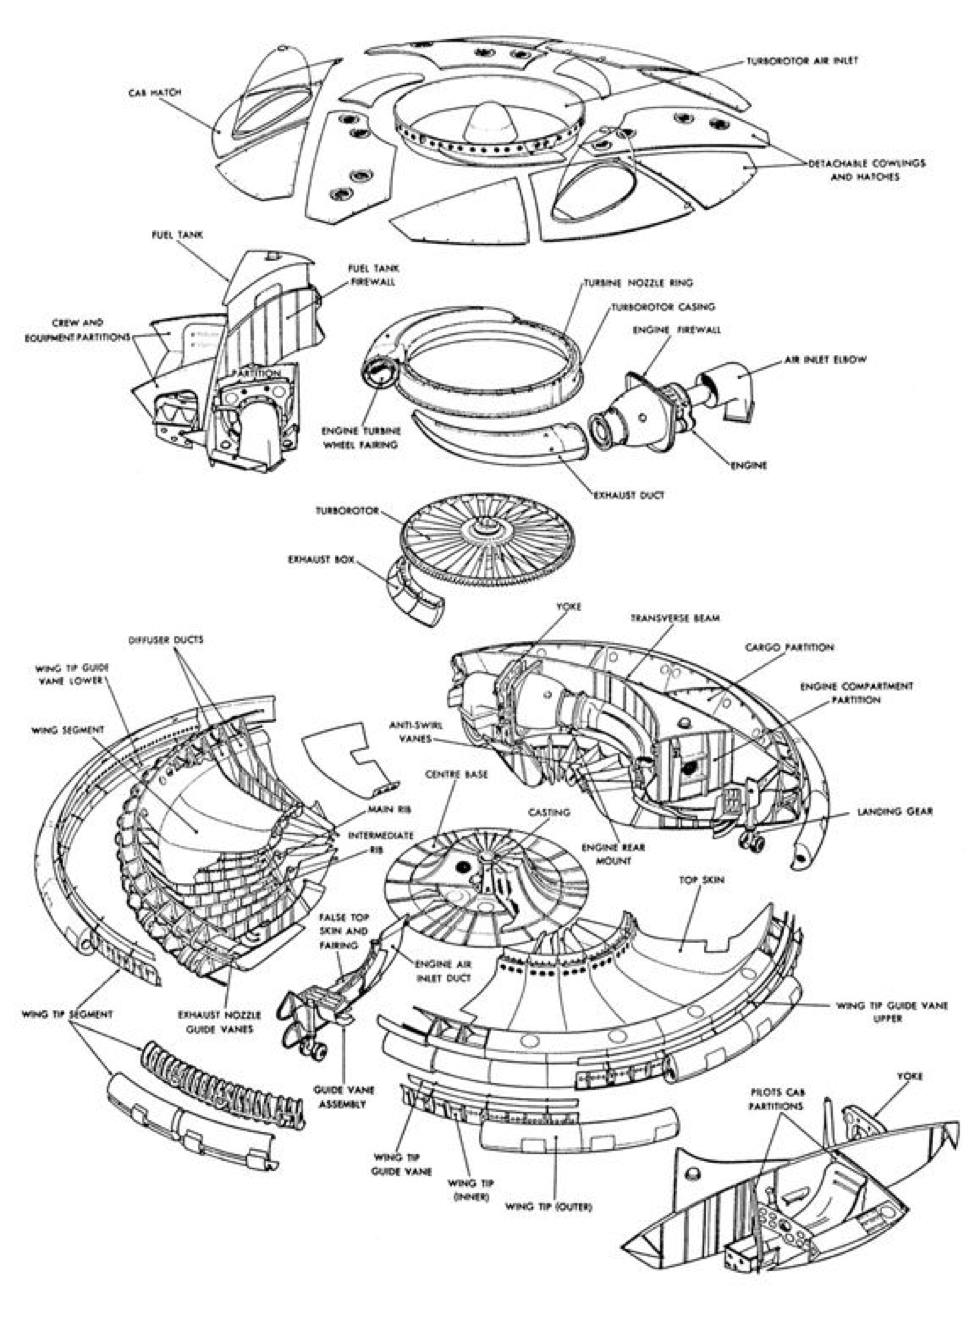 avrocar_exploded_view